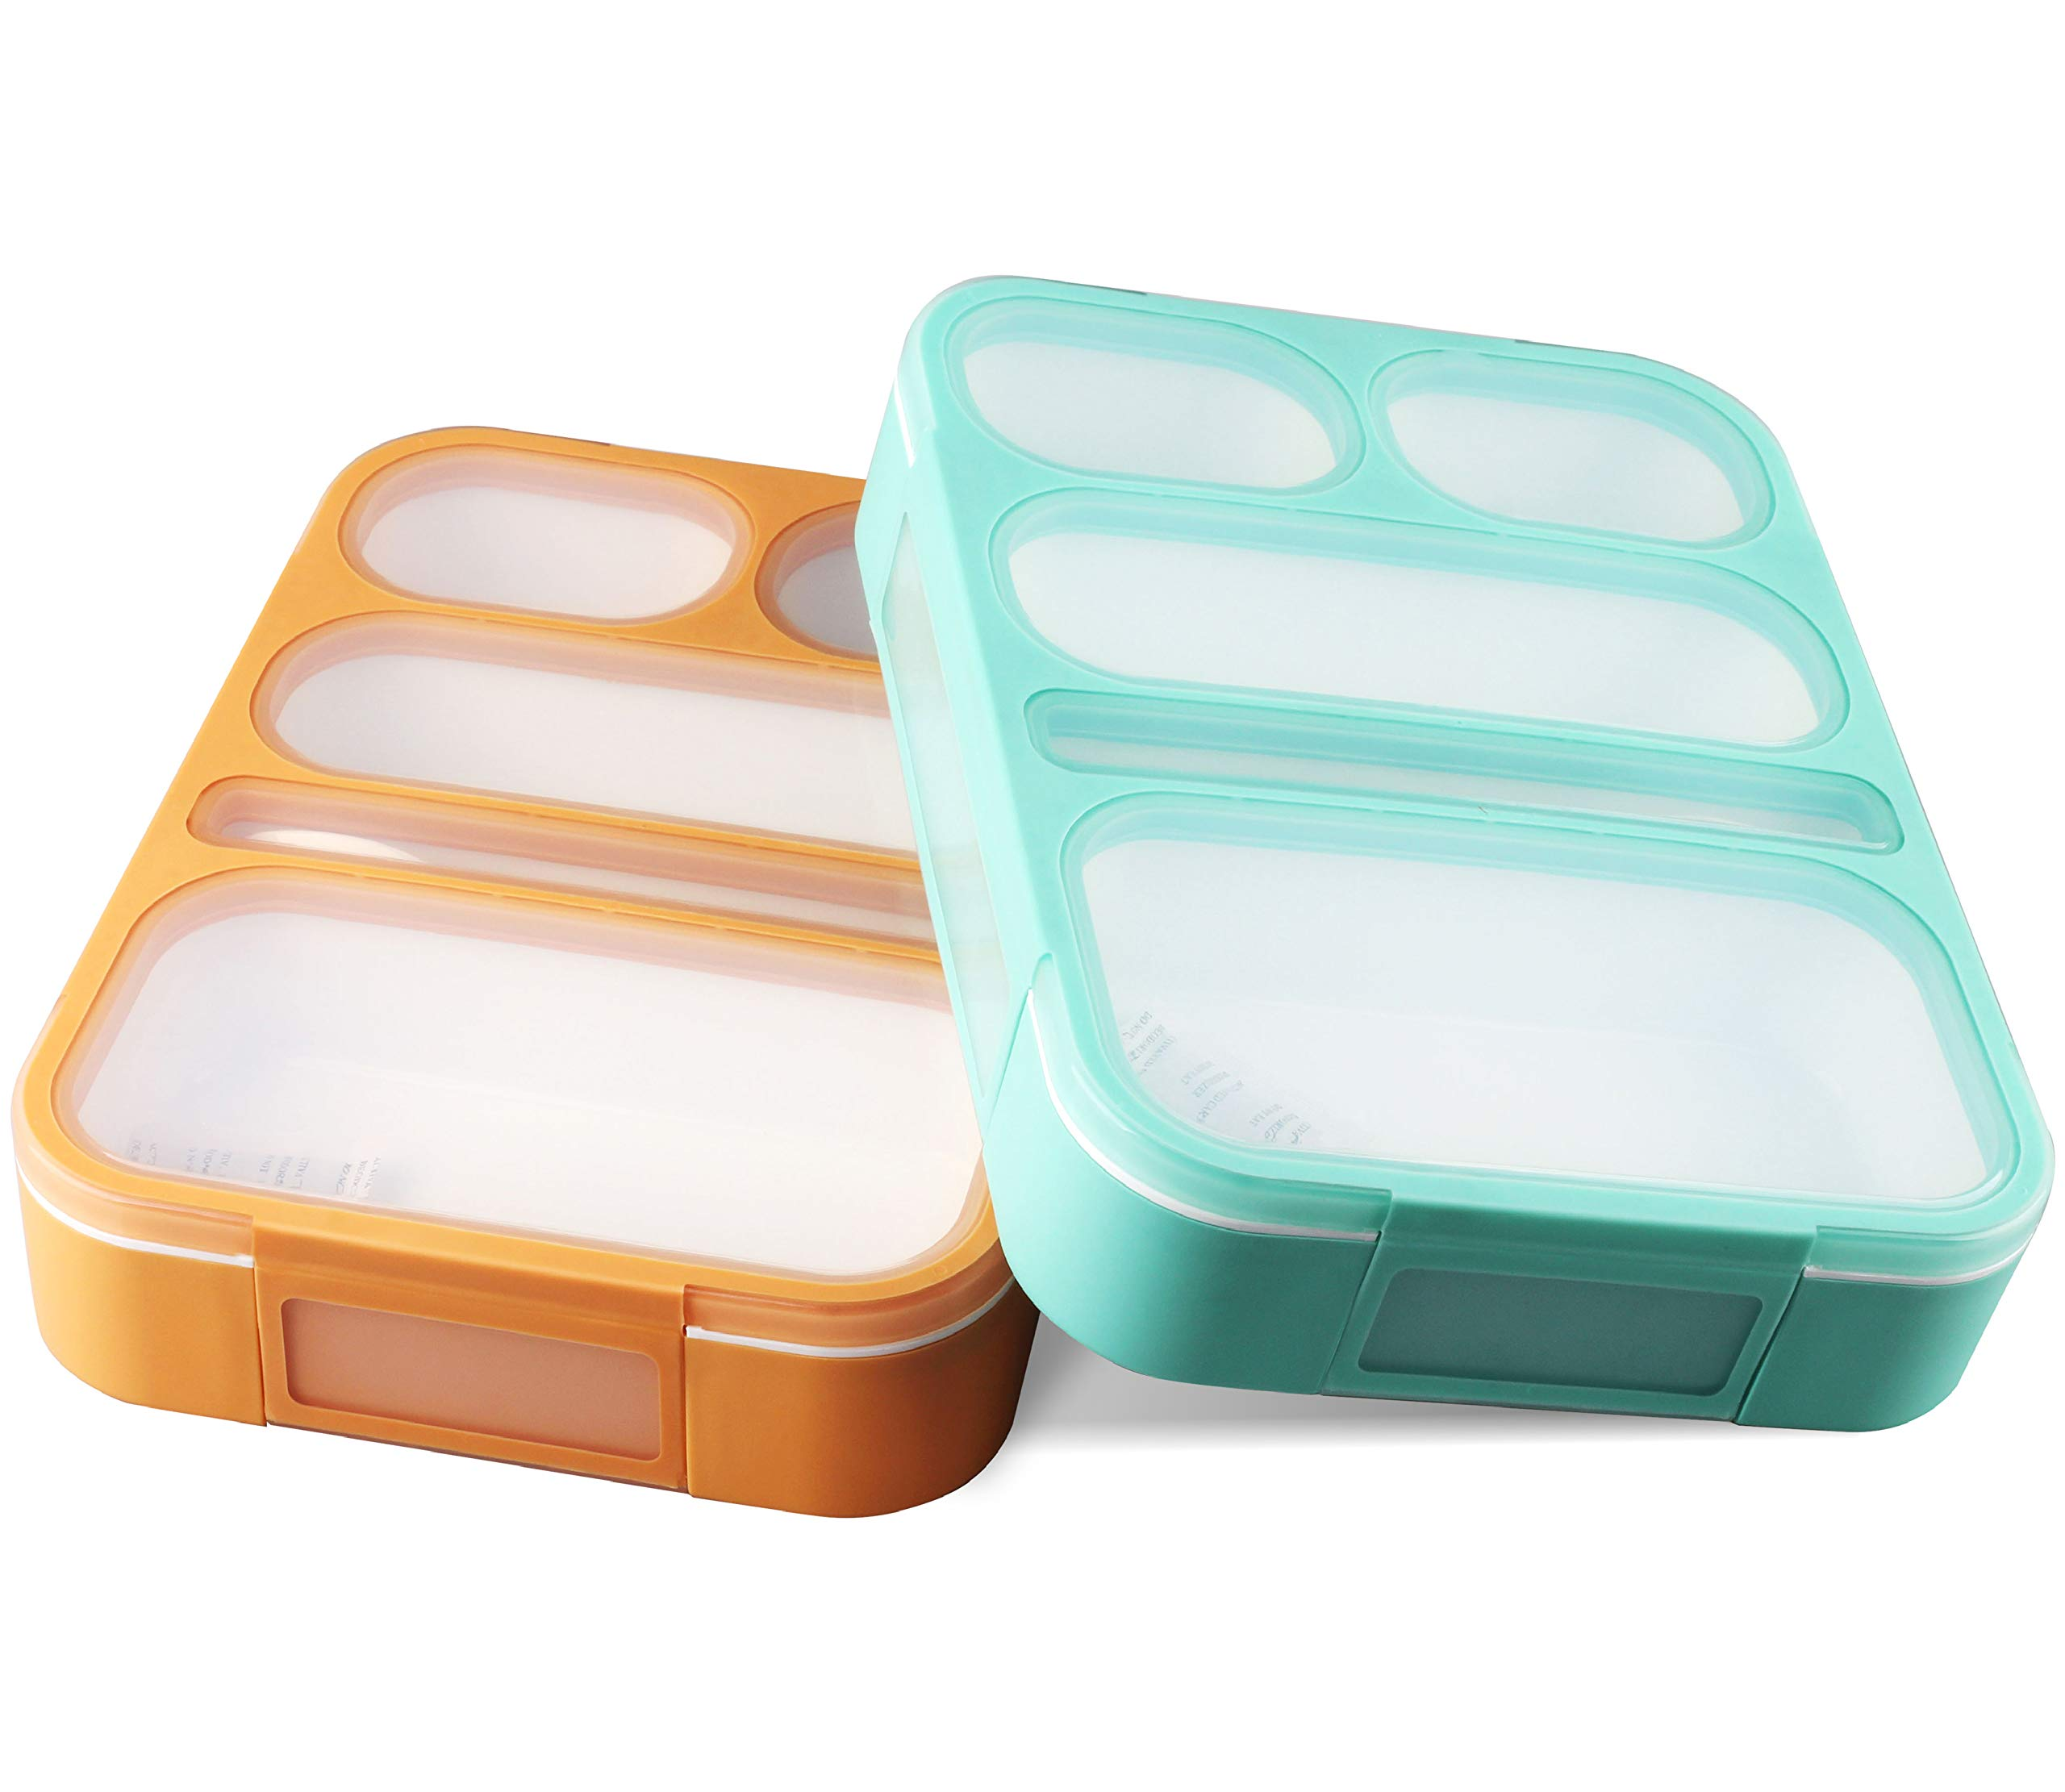 Bento Lunch Box For Kids and adults, 2 Leakproof Food & Meal Prep Containers With 5 Compartments + Full Cutlery Set Perfect For Healthy Snacks BPA & FDA Free Microwave Dishwasher Safe - PLUSPOINT by PlusPoint